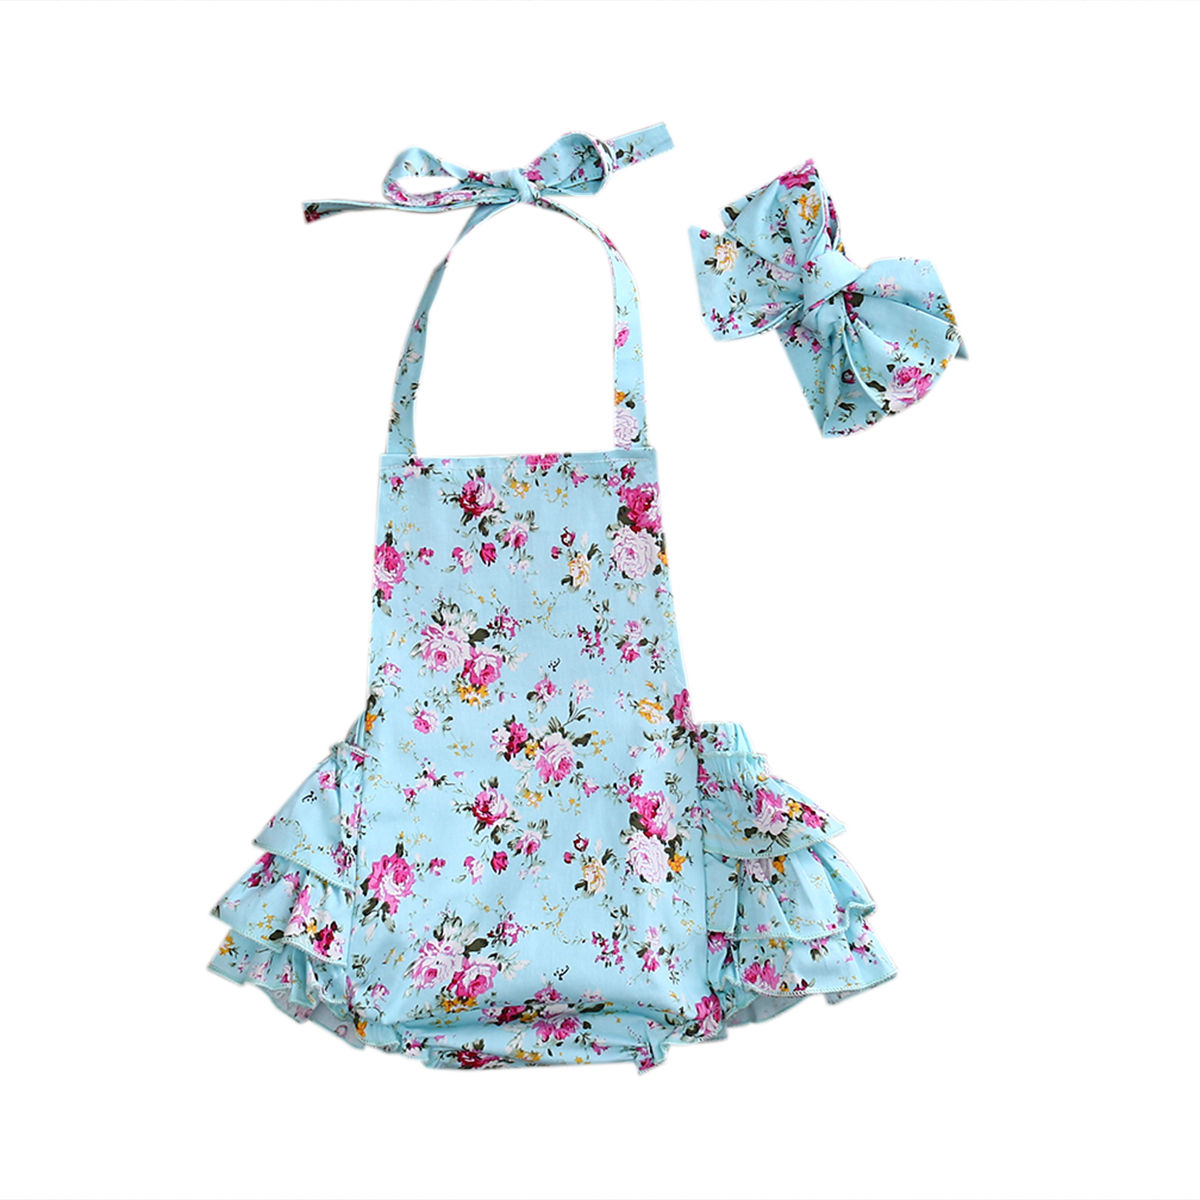 Summer Newborn Infant Baby Girls Floral Tiered Romper Jumpsuit Outfit Sunsuit Playsuit Belt Cotton Clothes newborn infant baby girl clothes strap lace floral romper jumpsuit outfit summer cotton backless one pieces outfit baby onesie